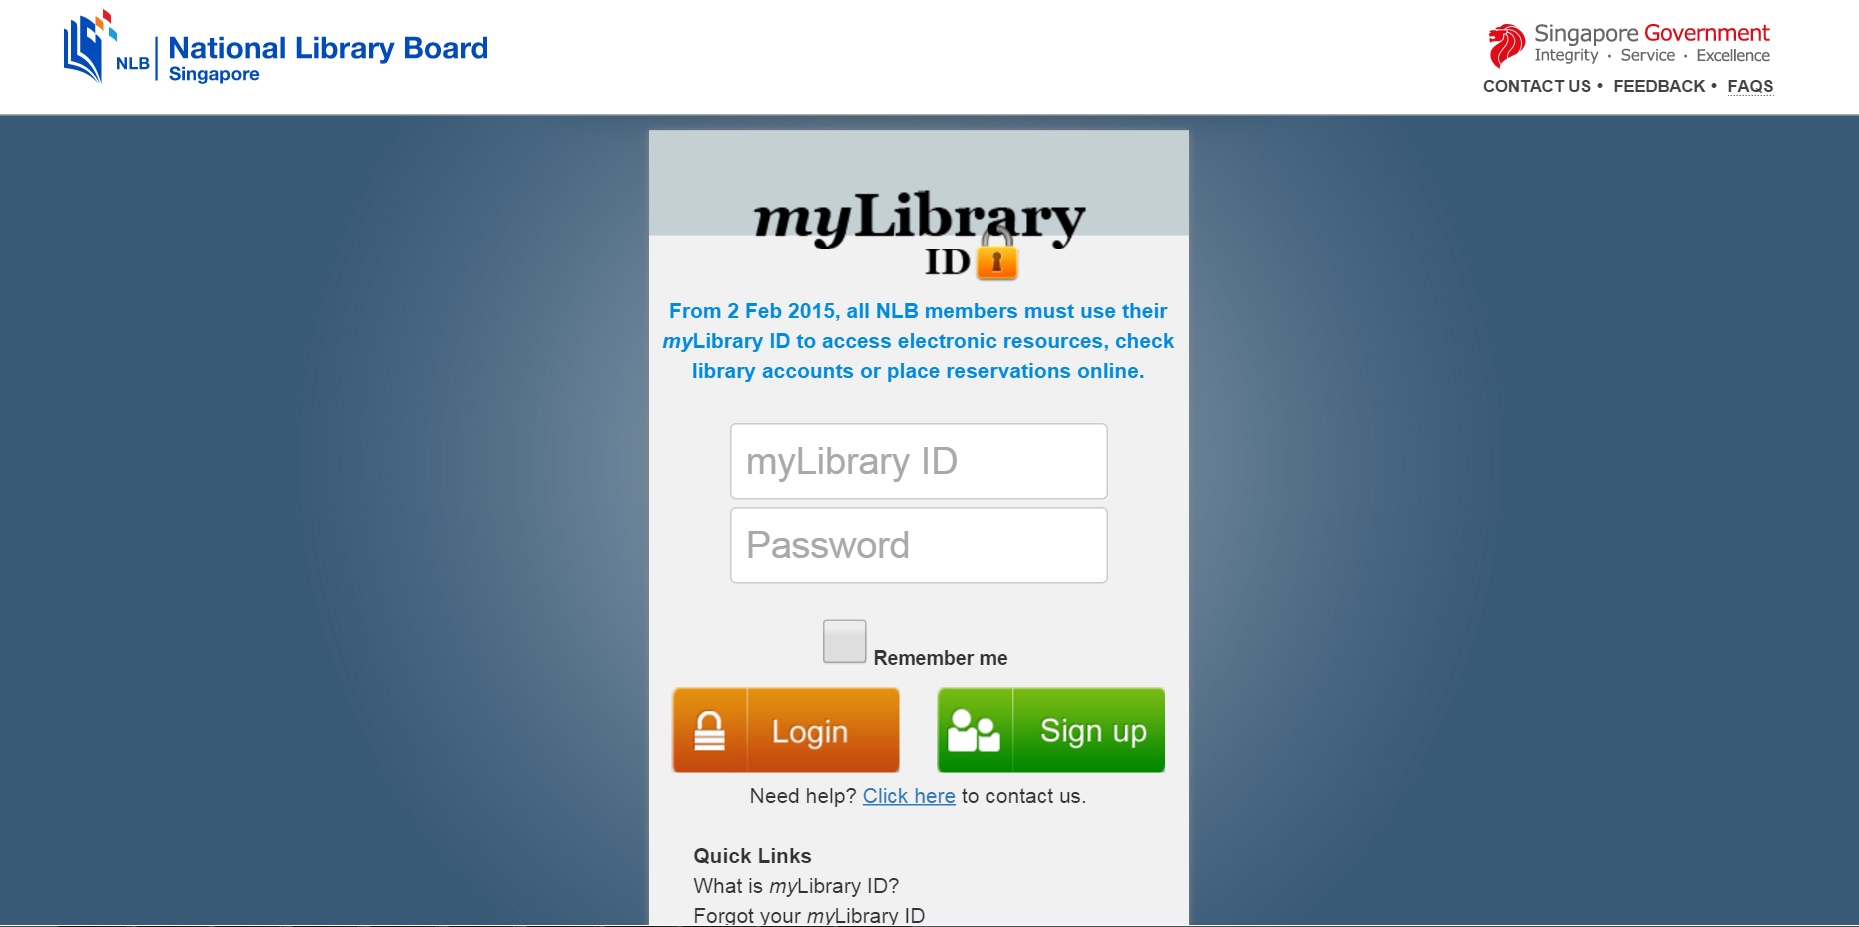 Login with myLibrary ID and password